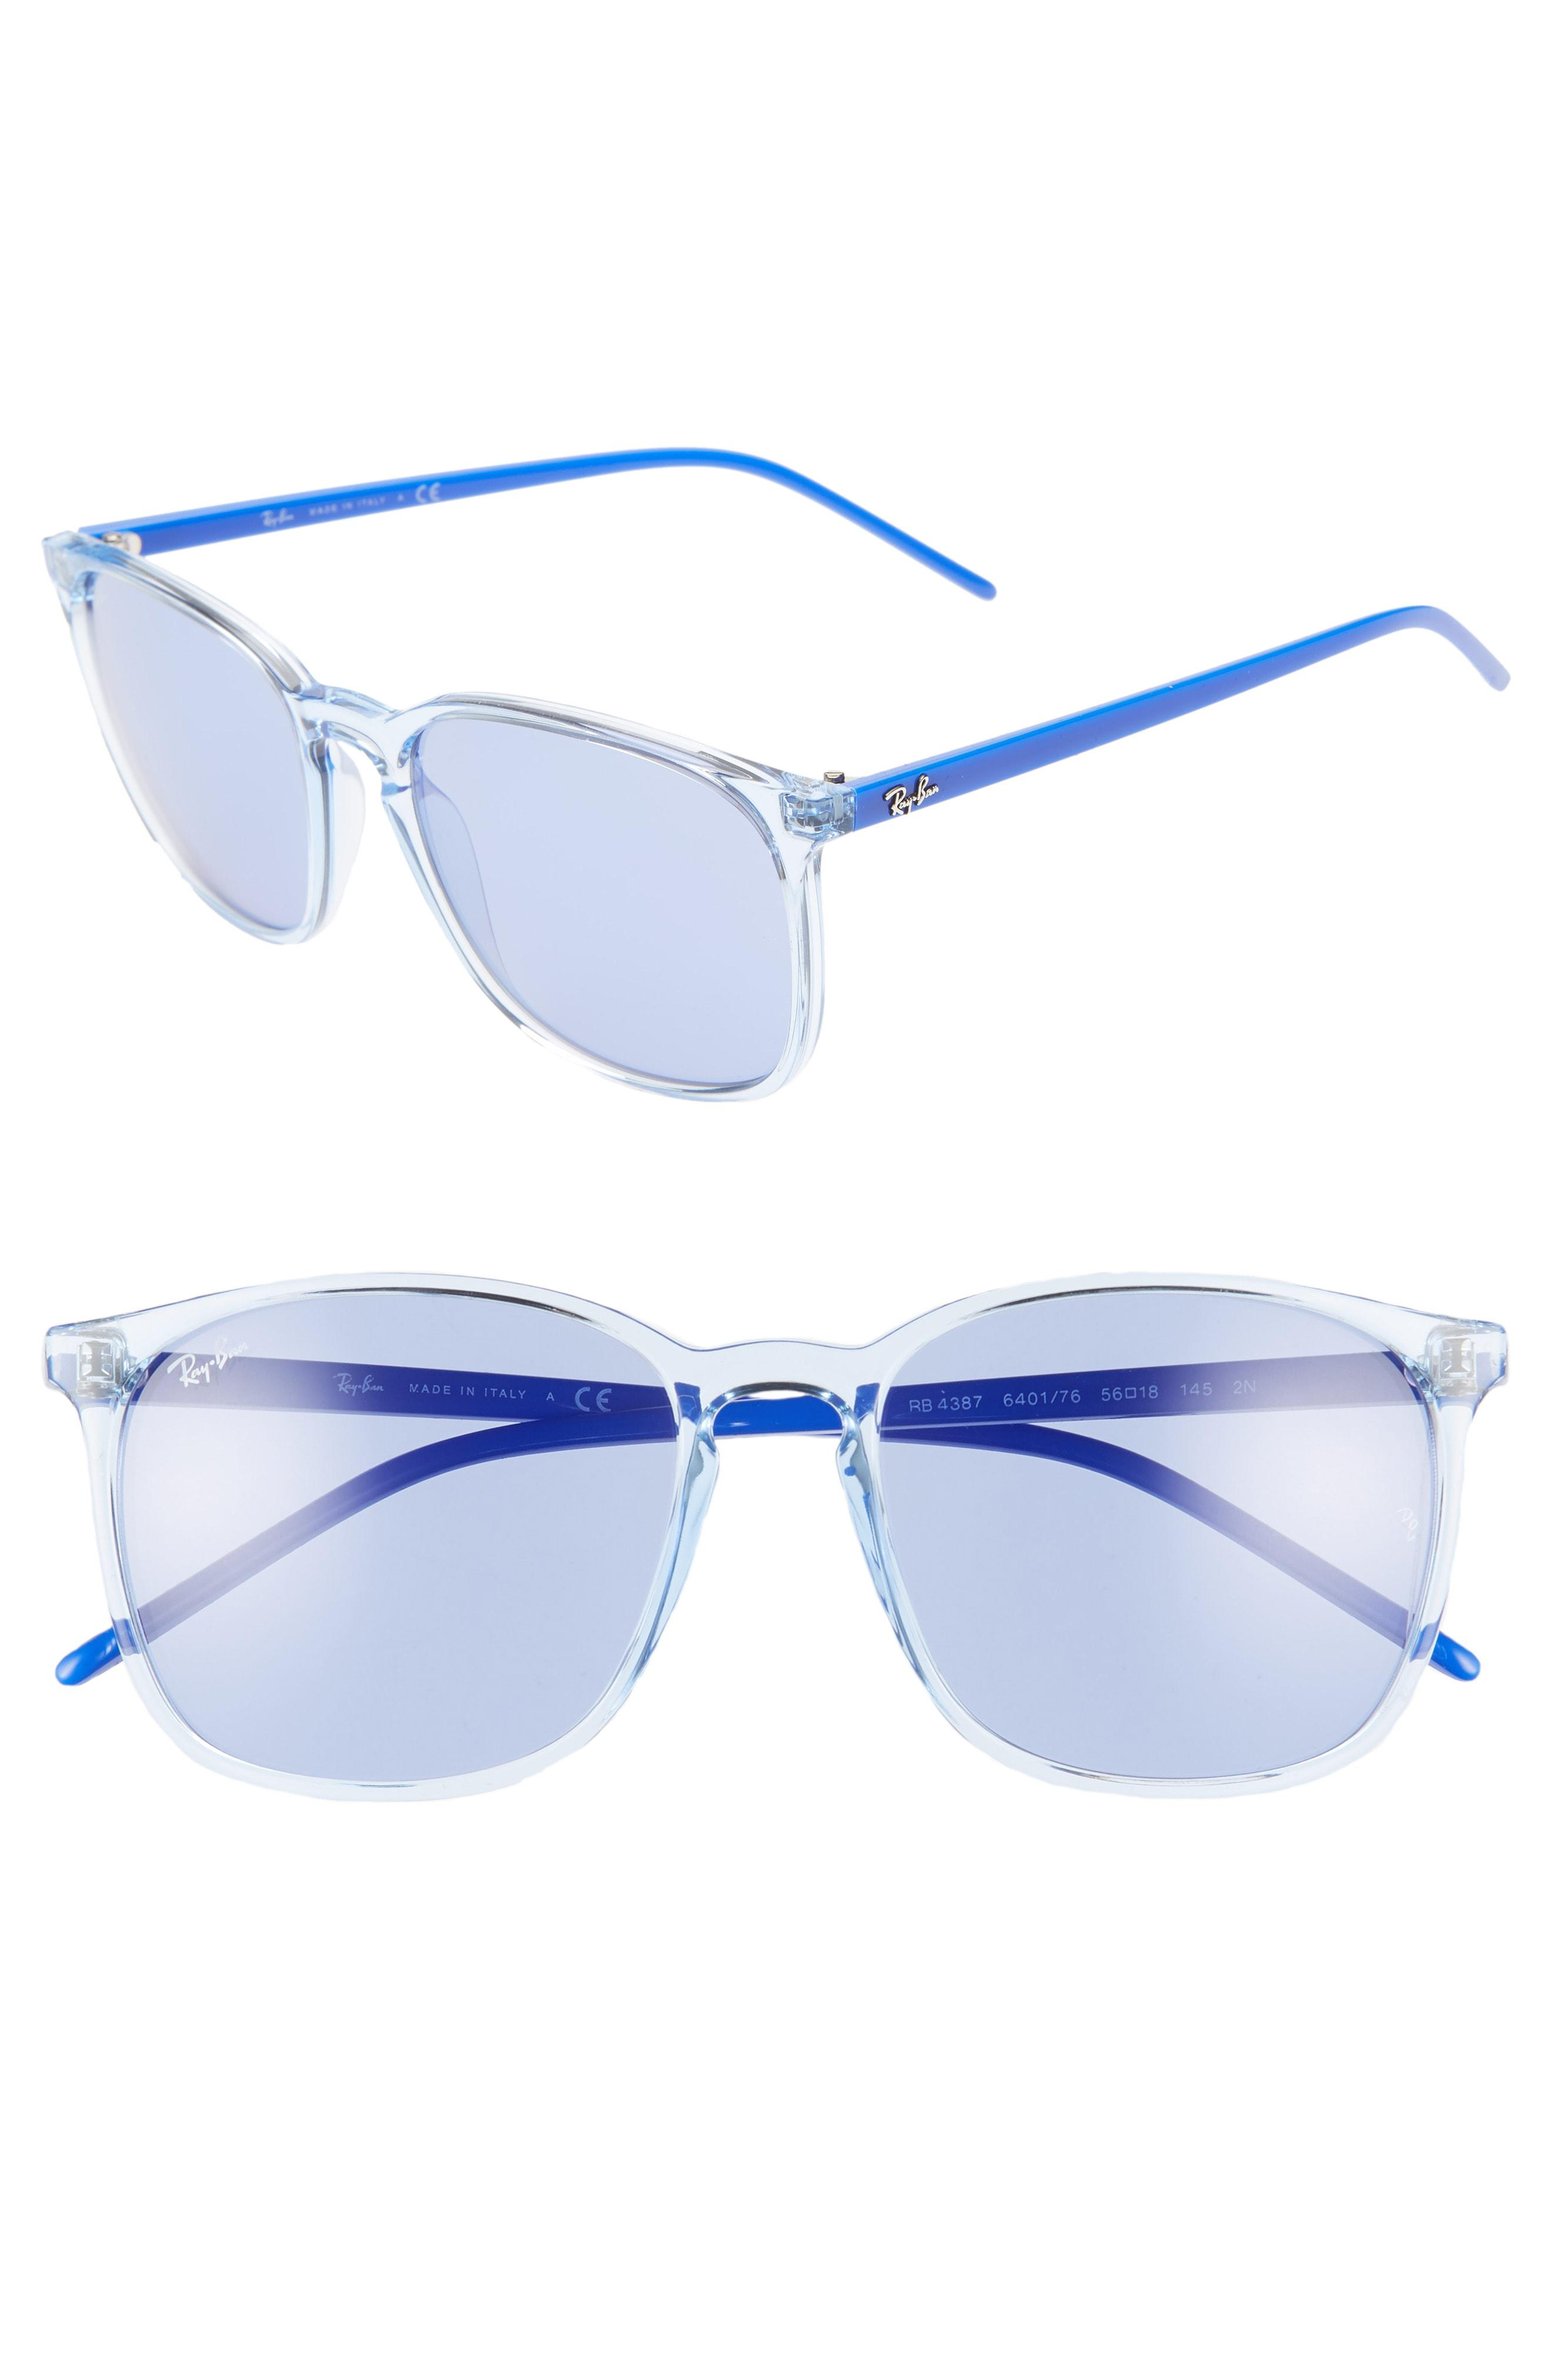 a070ac0747b Lyst - Ray-Ban 56mm Sunglasses - Light Blue  Blue Solid in Blue